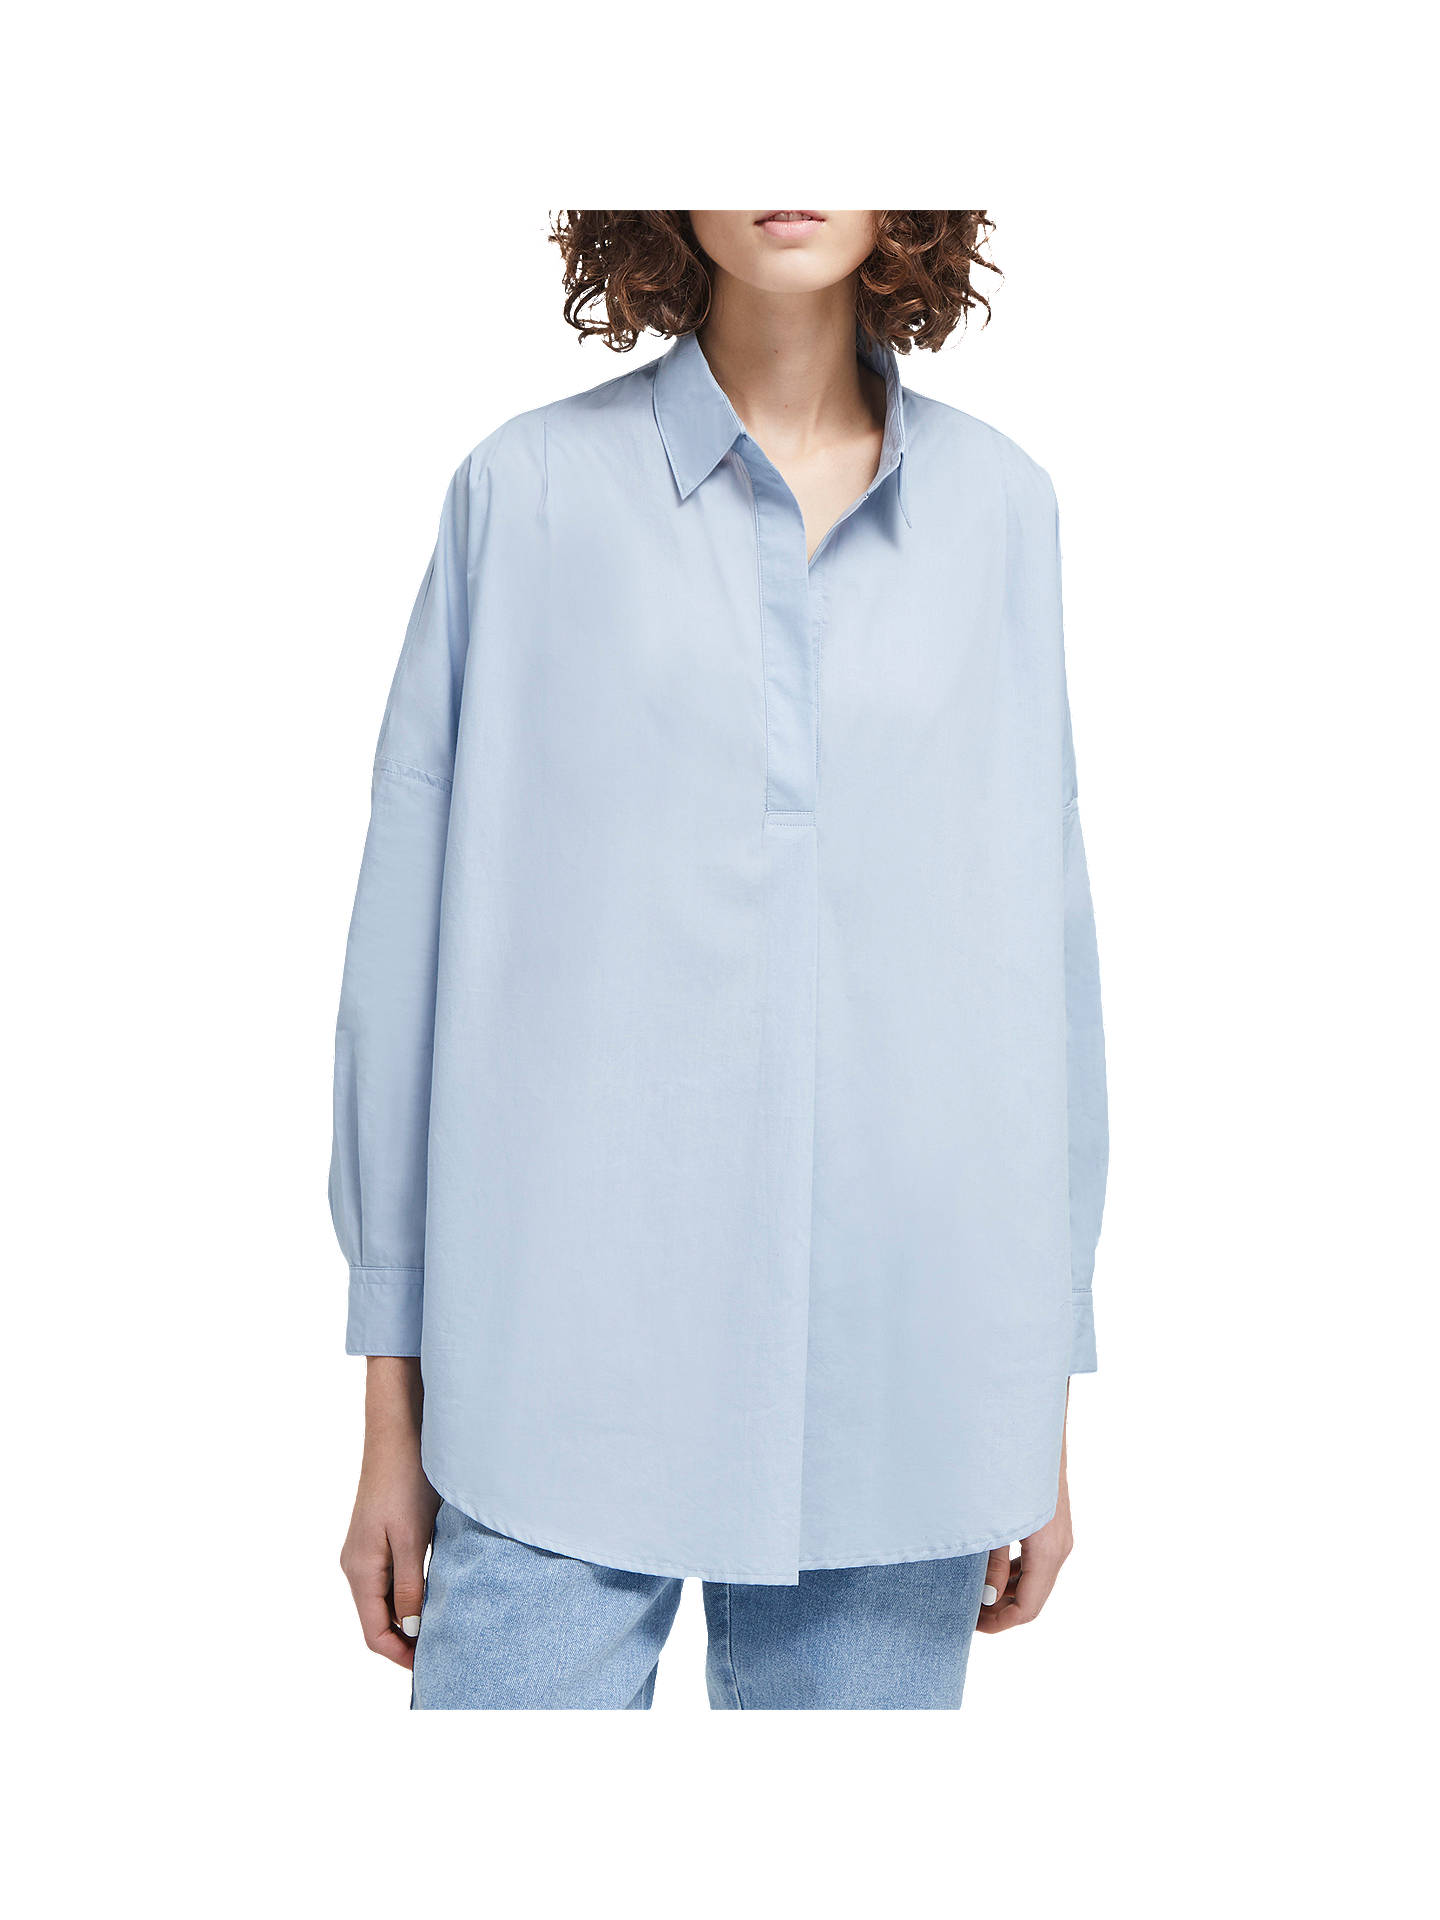 bde9f987d2e French Connection Rhodes Poplin Shirt at John Lewis   Partners